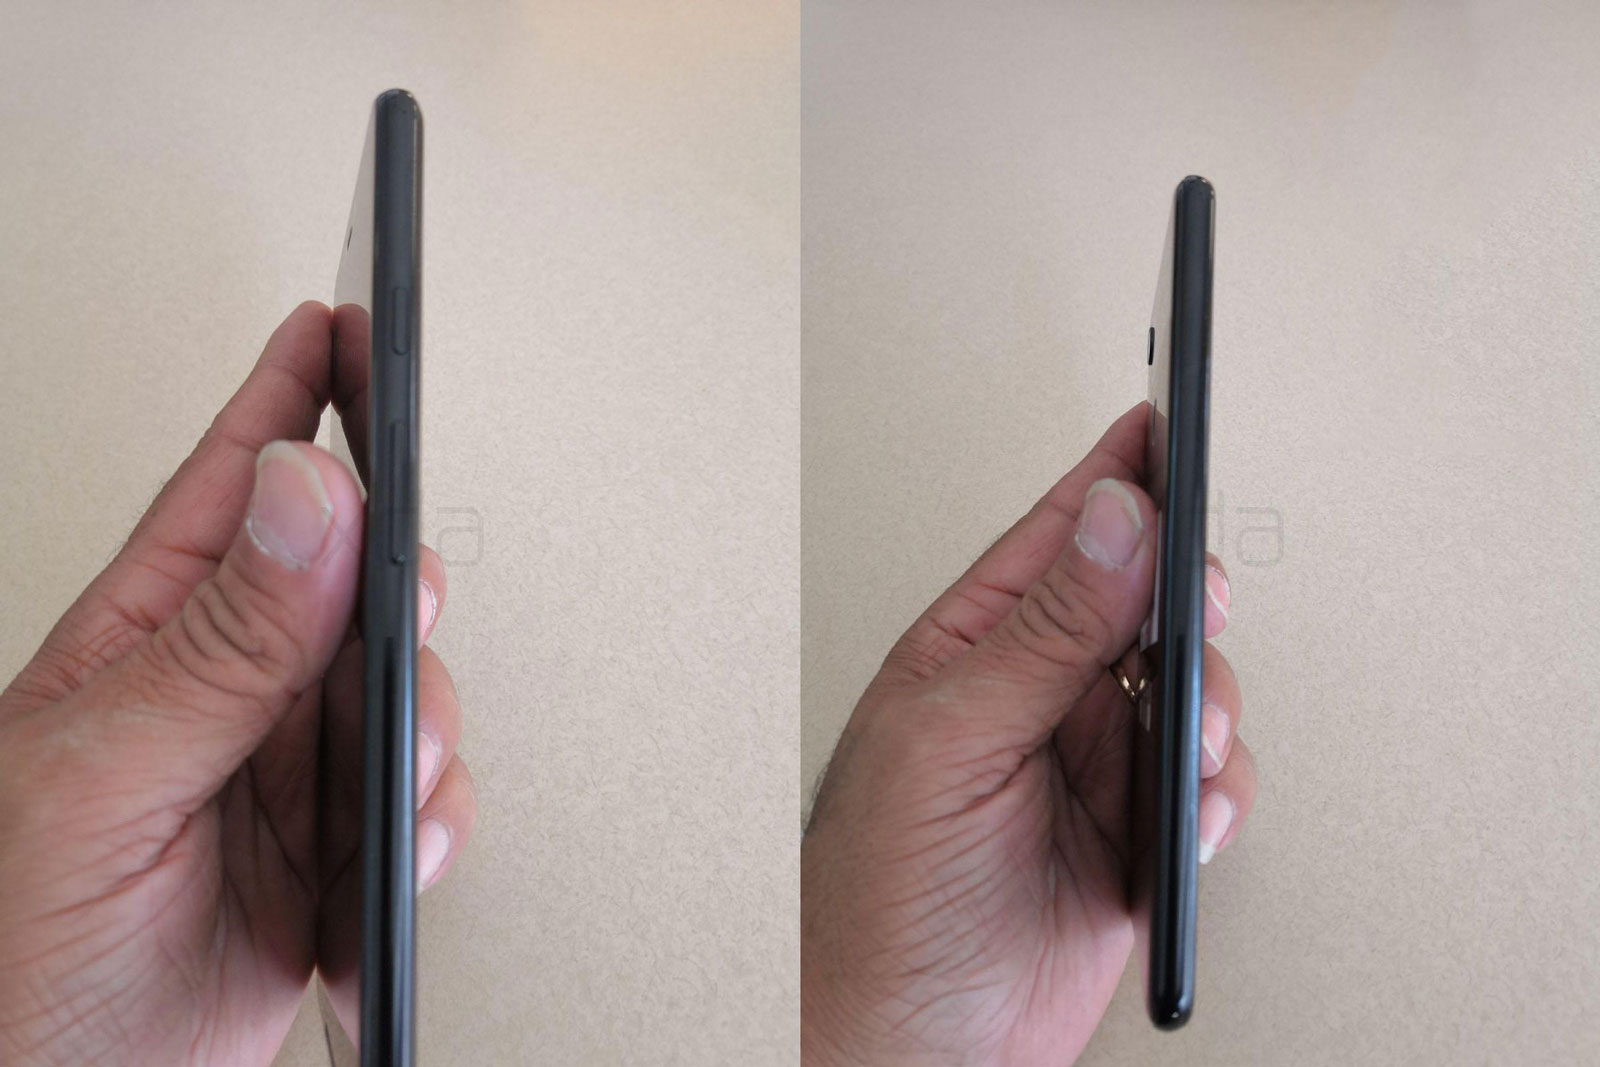 Google-Pixel-3-XL-Leak-Photo-2-techie